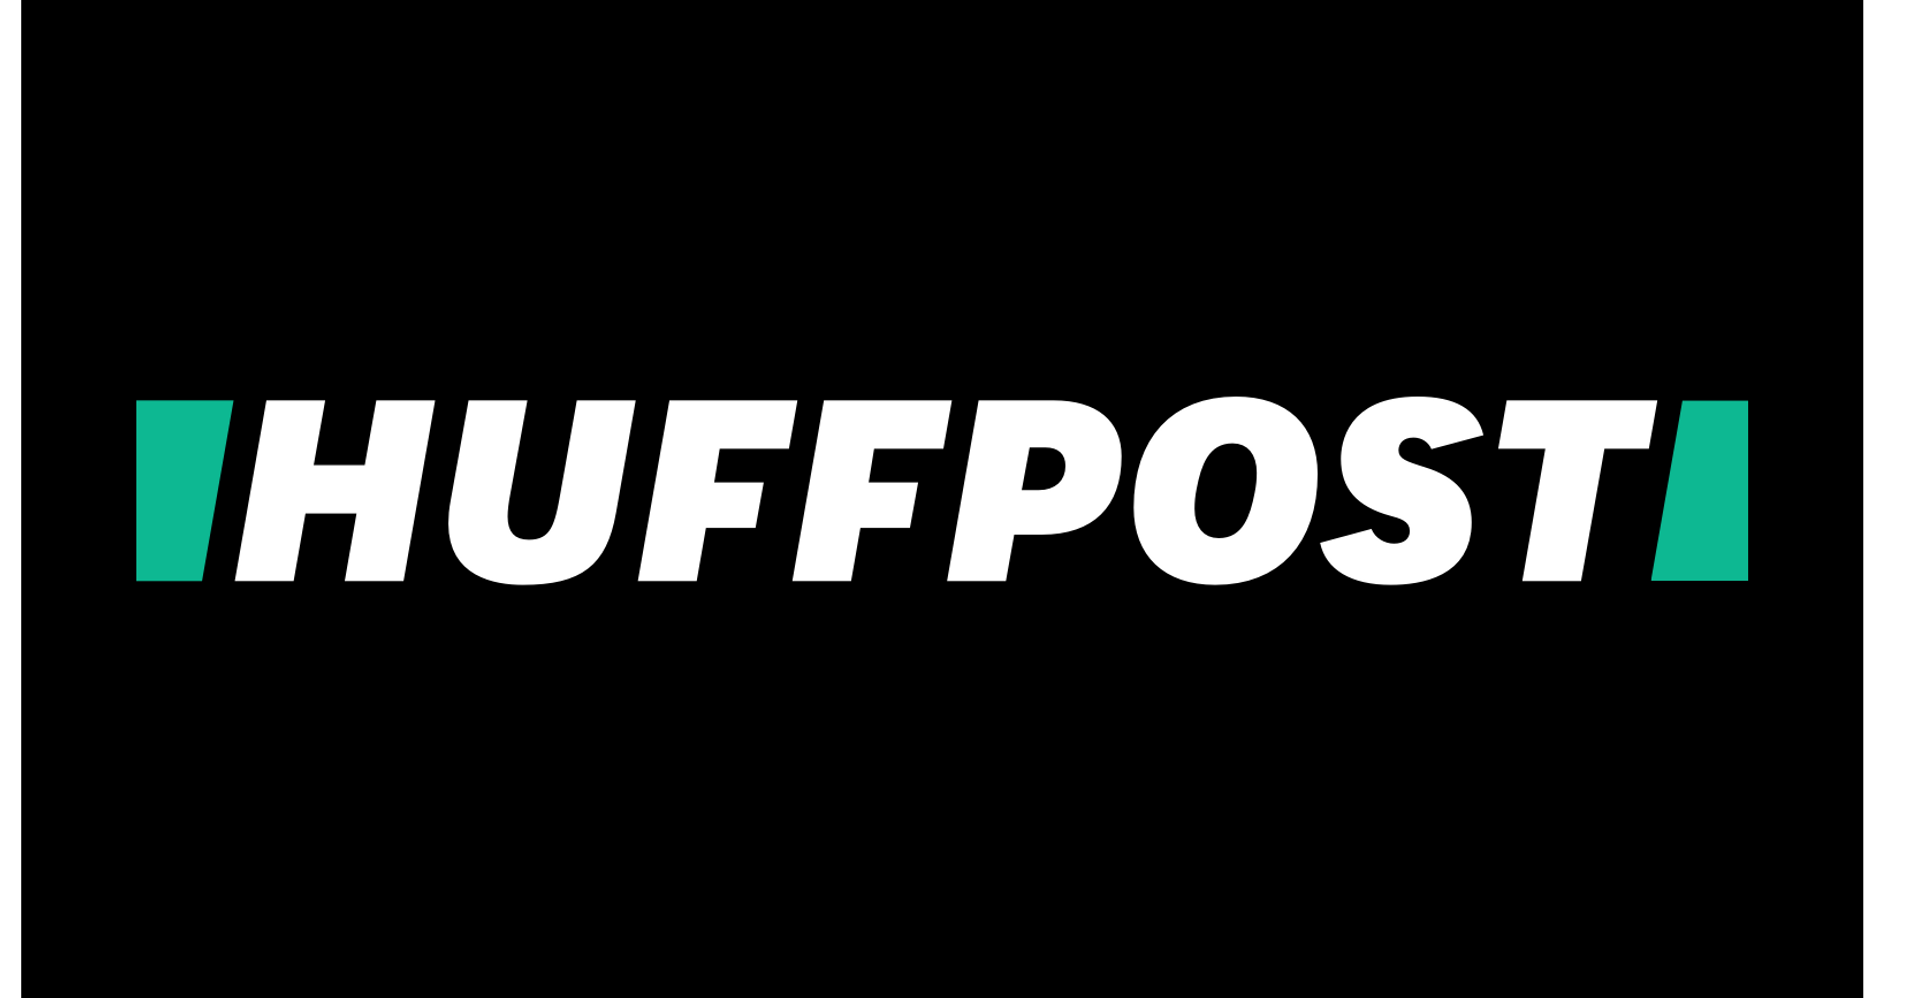 how to pitch to huffpost opinion and huffpost personal huffpost